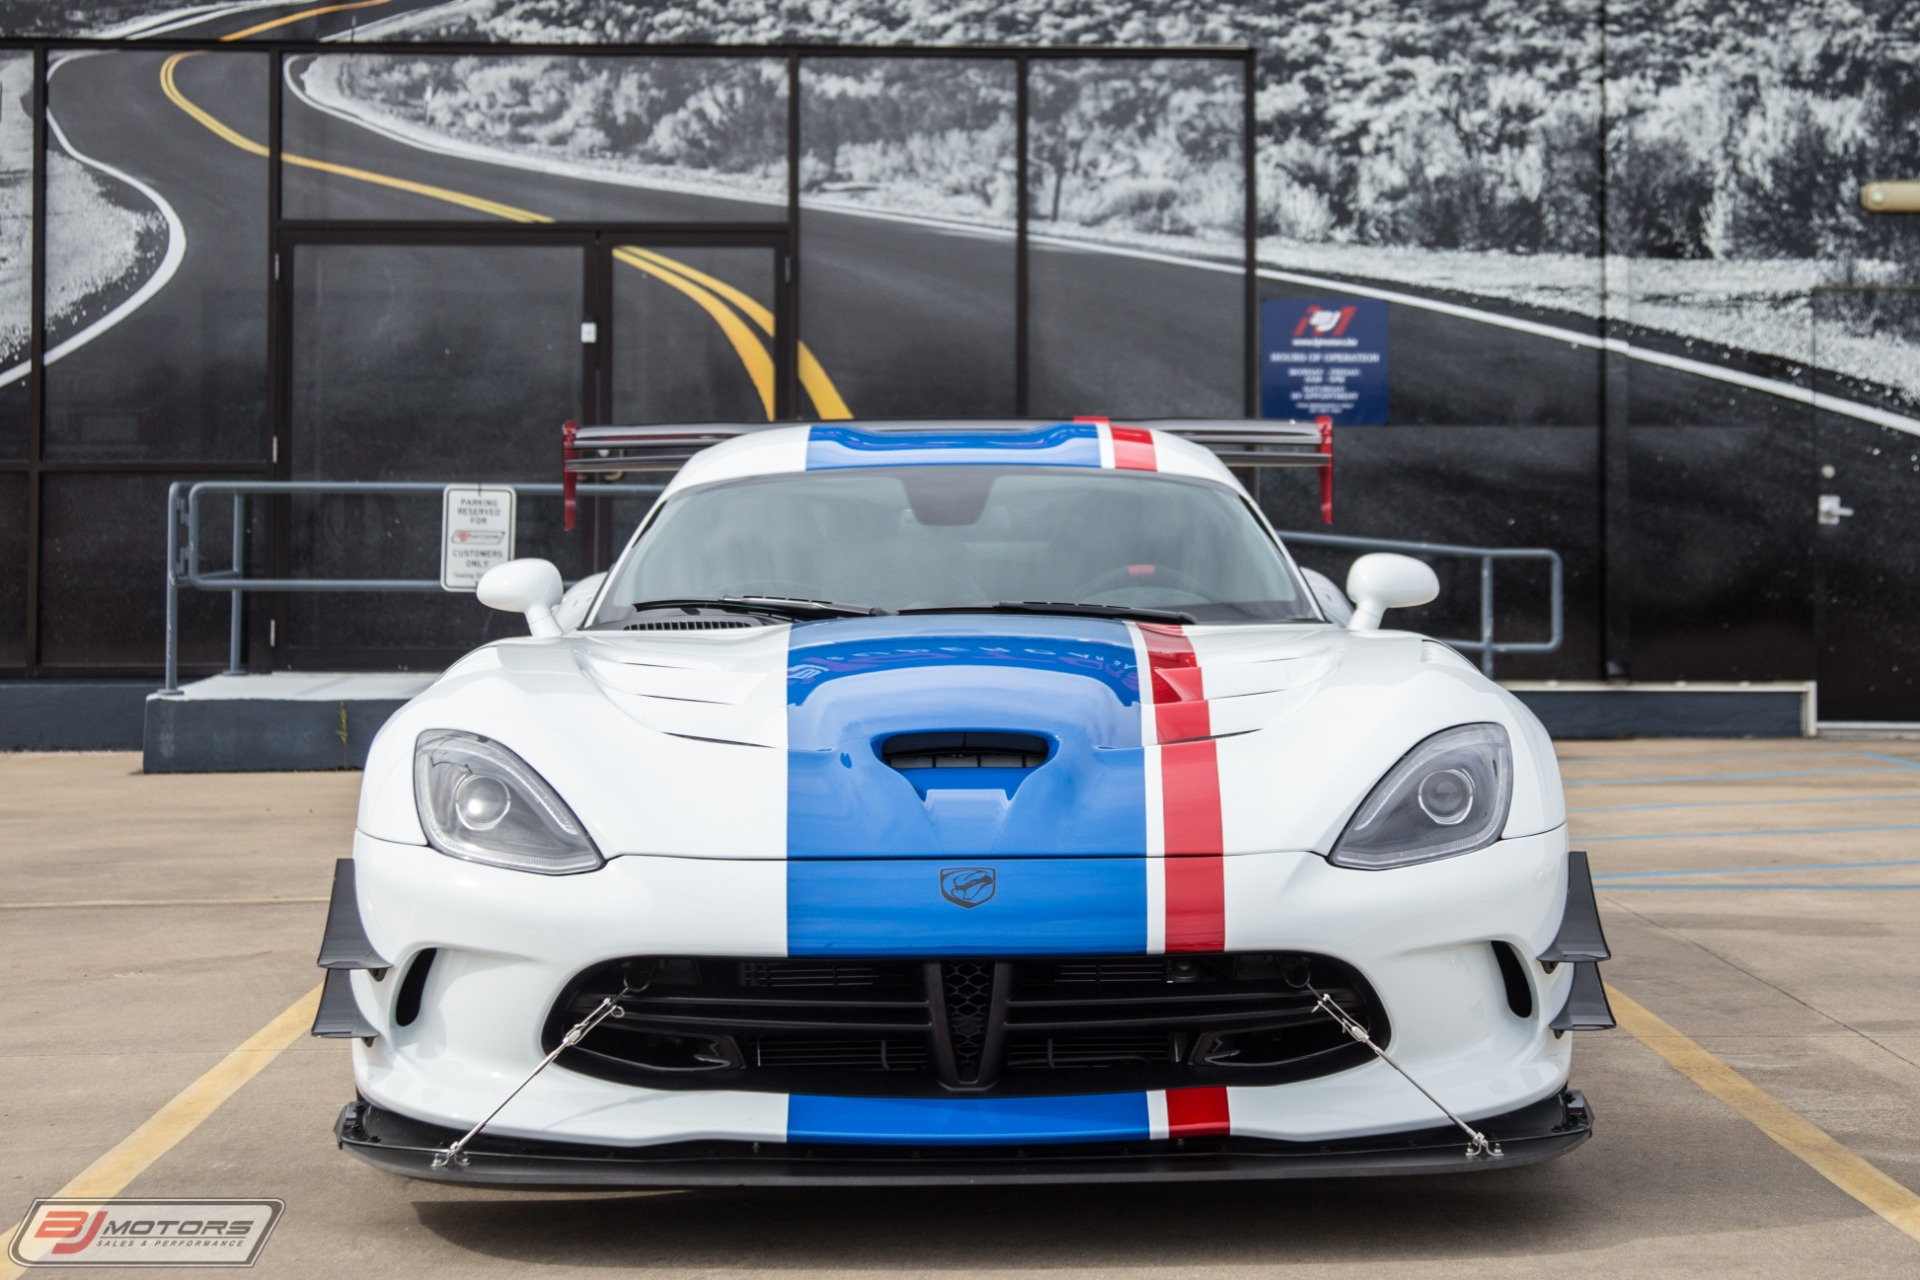 New 2017 Dodge Viper GTC Dealer Edition 10 of 11 For Sale ($159,995